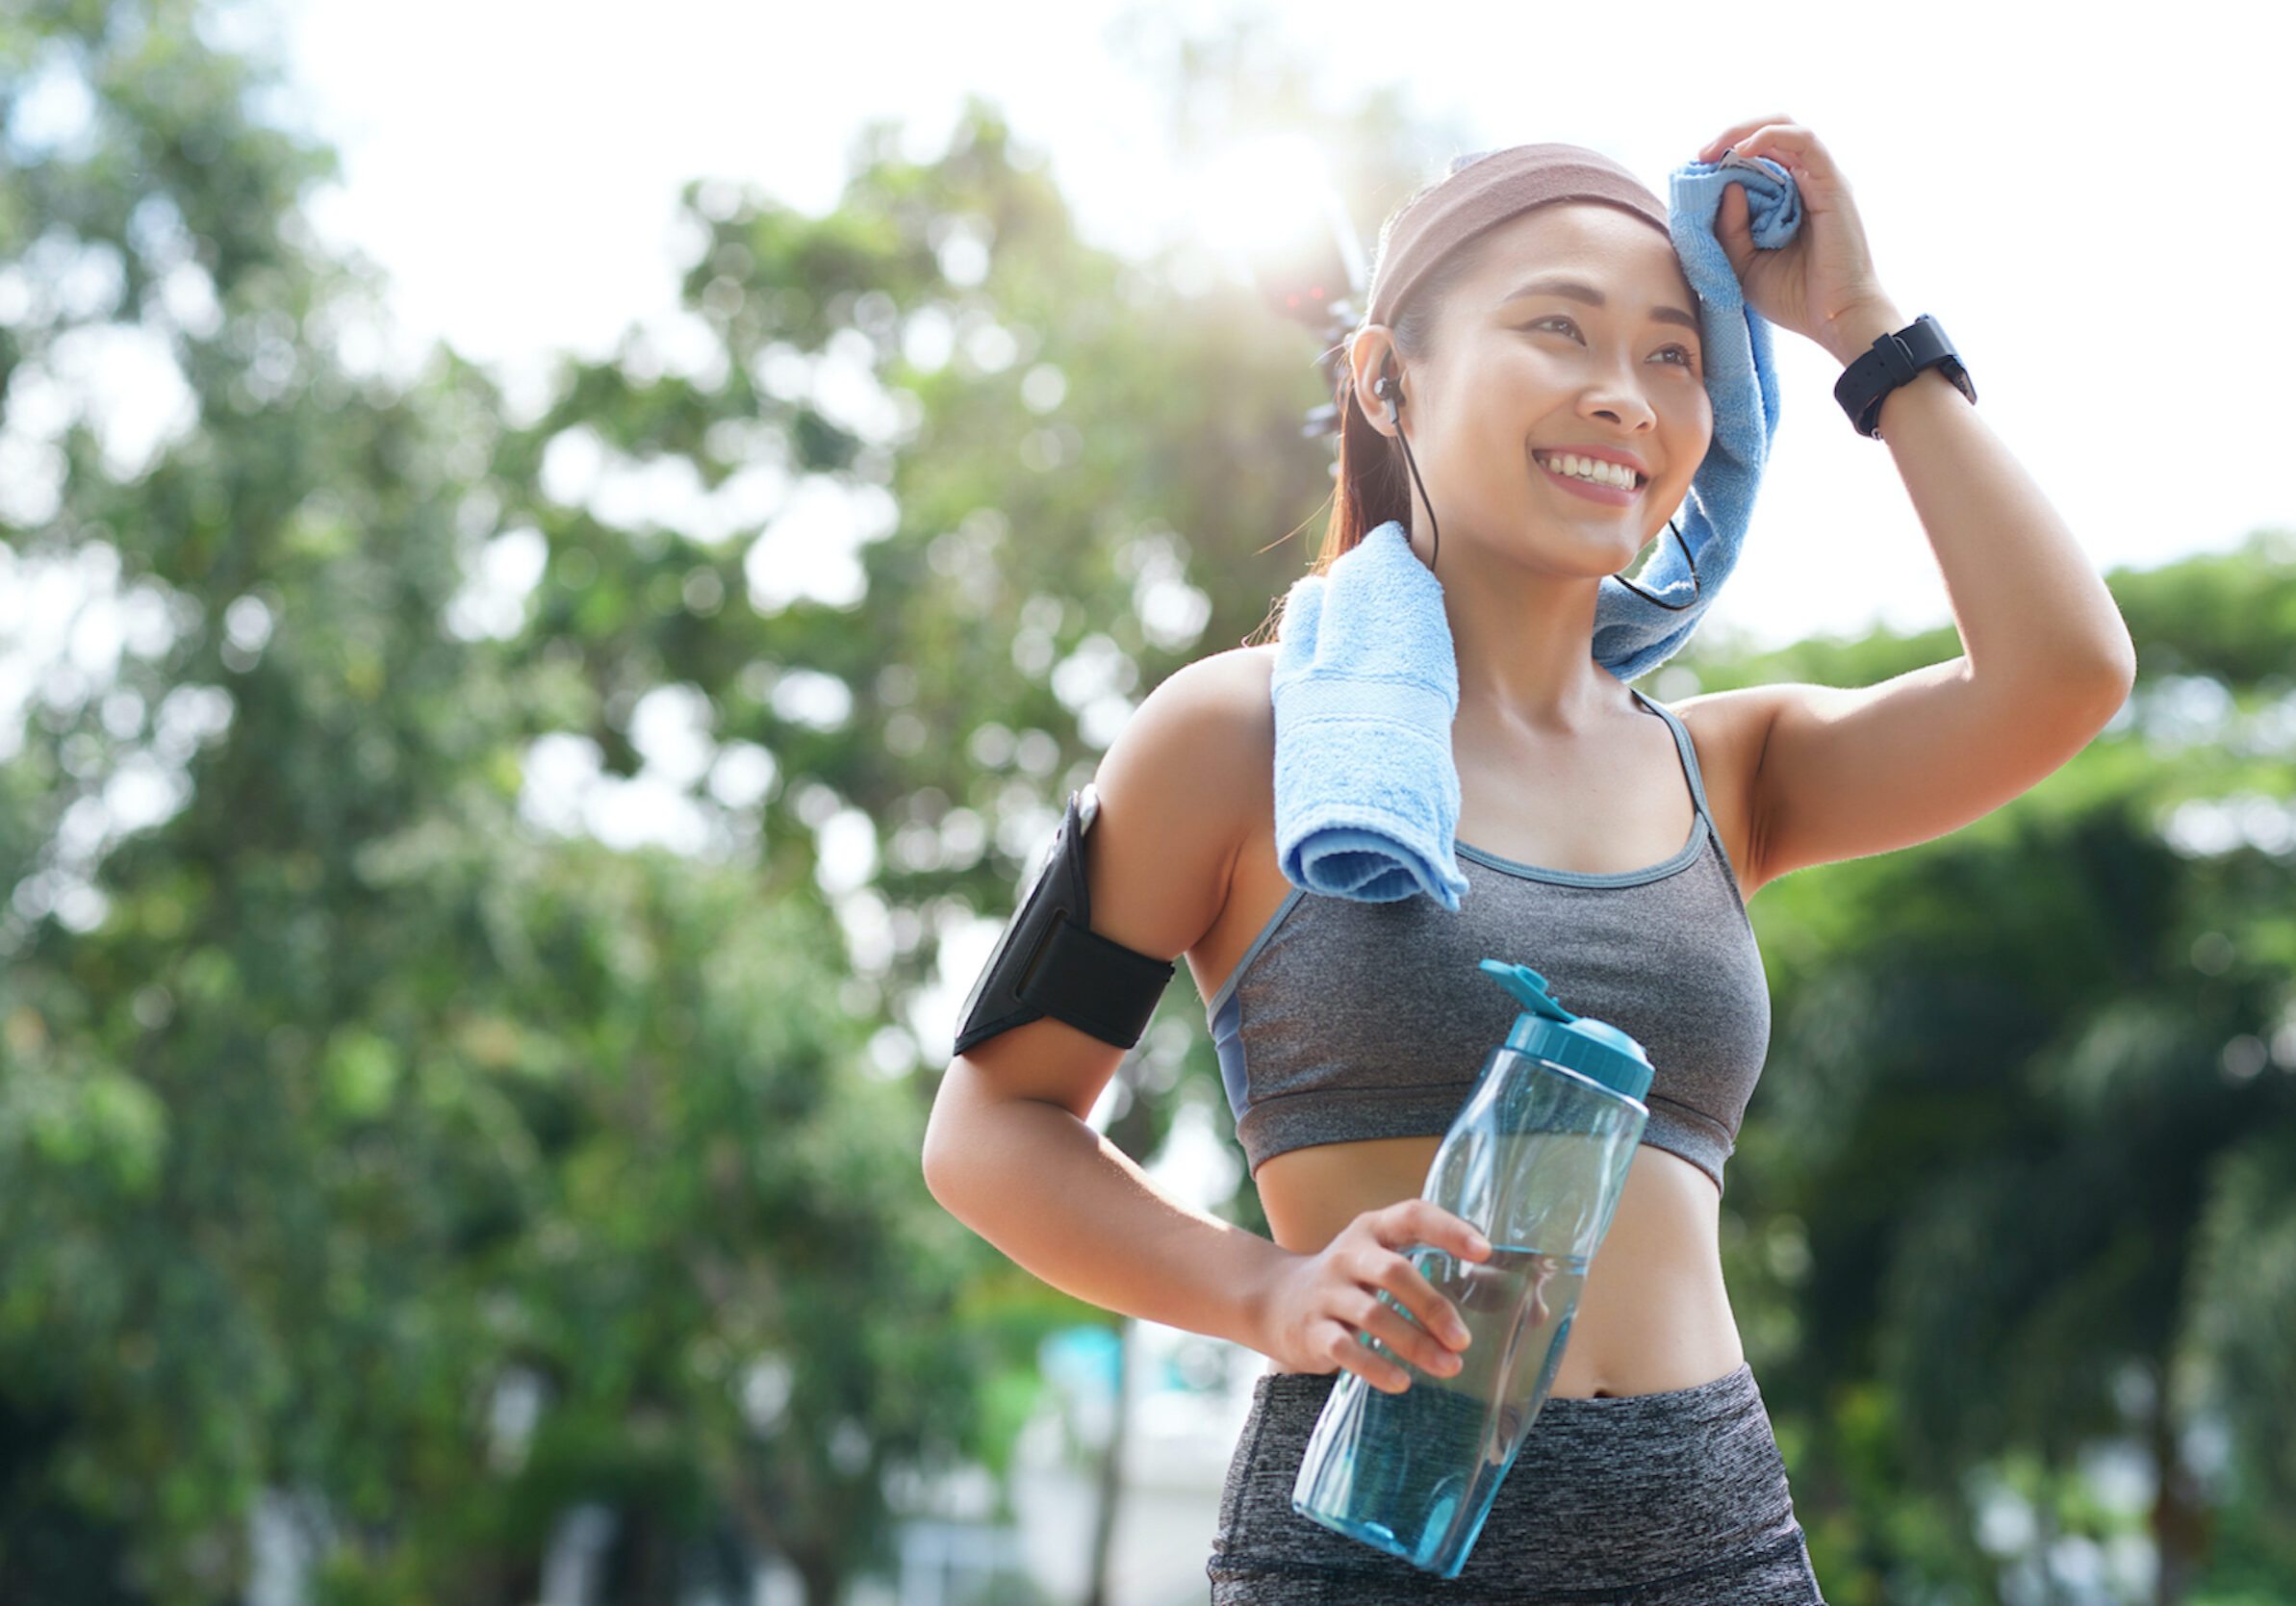 Cheerful sportswoman with bottle and towel